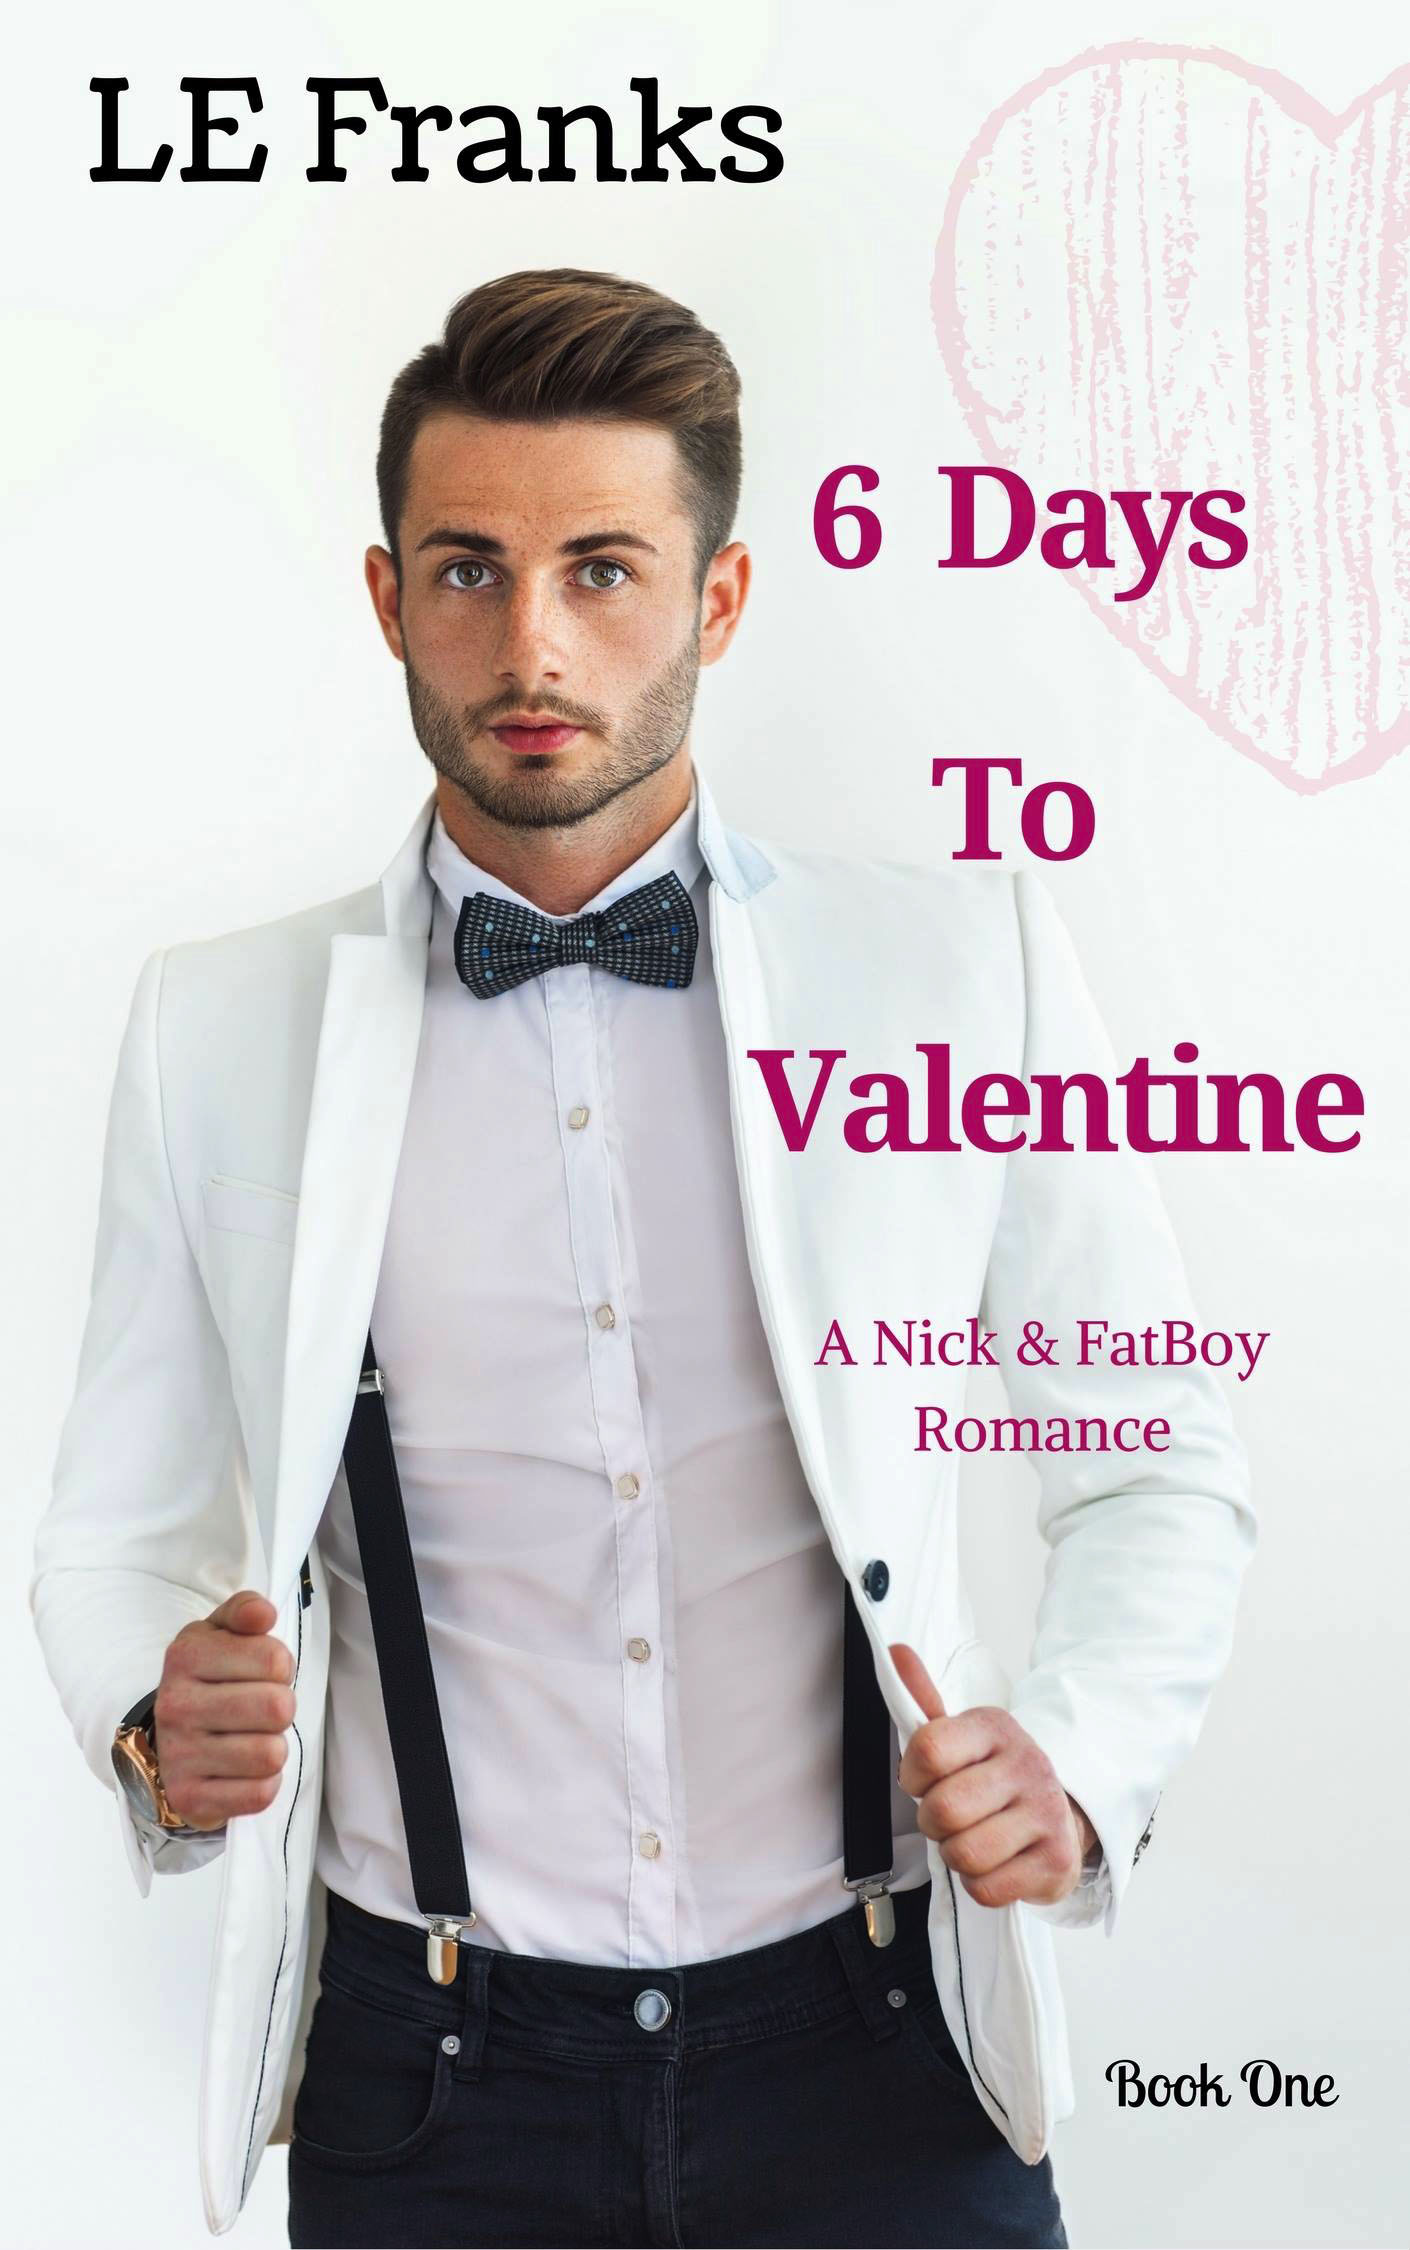 6 Days to Valentine - LE Franks - Nick & FatBoy